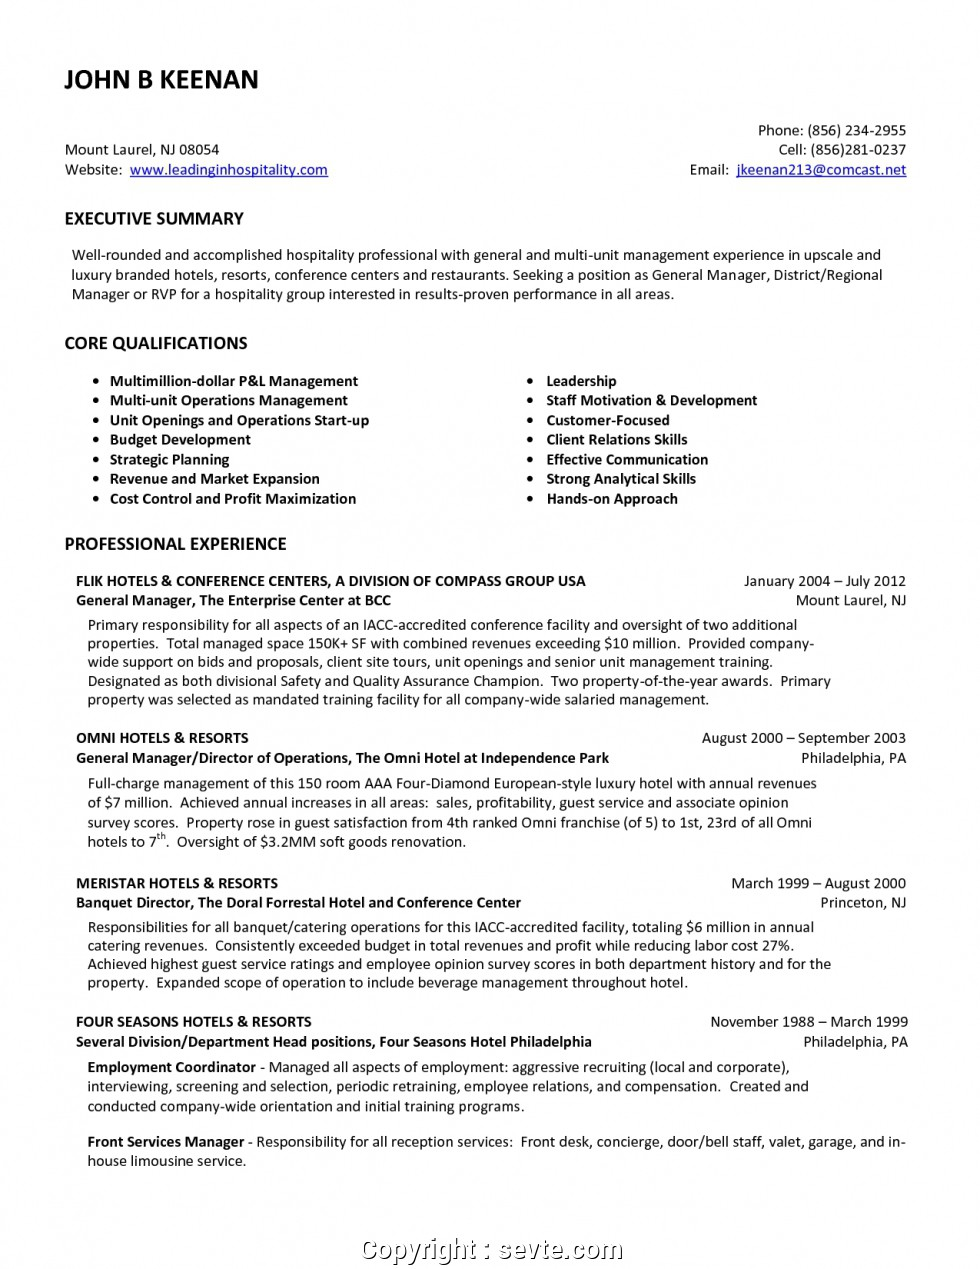 restaurant manager resume objective free templates fast food good simple best business Resume Fast Food Resume Objective